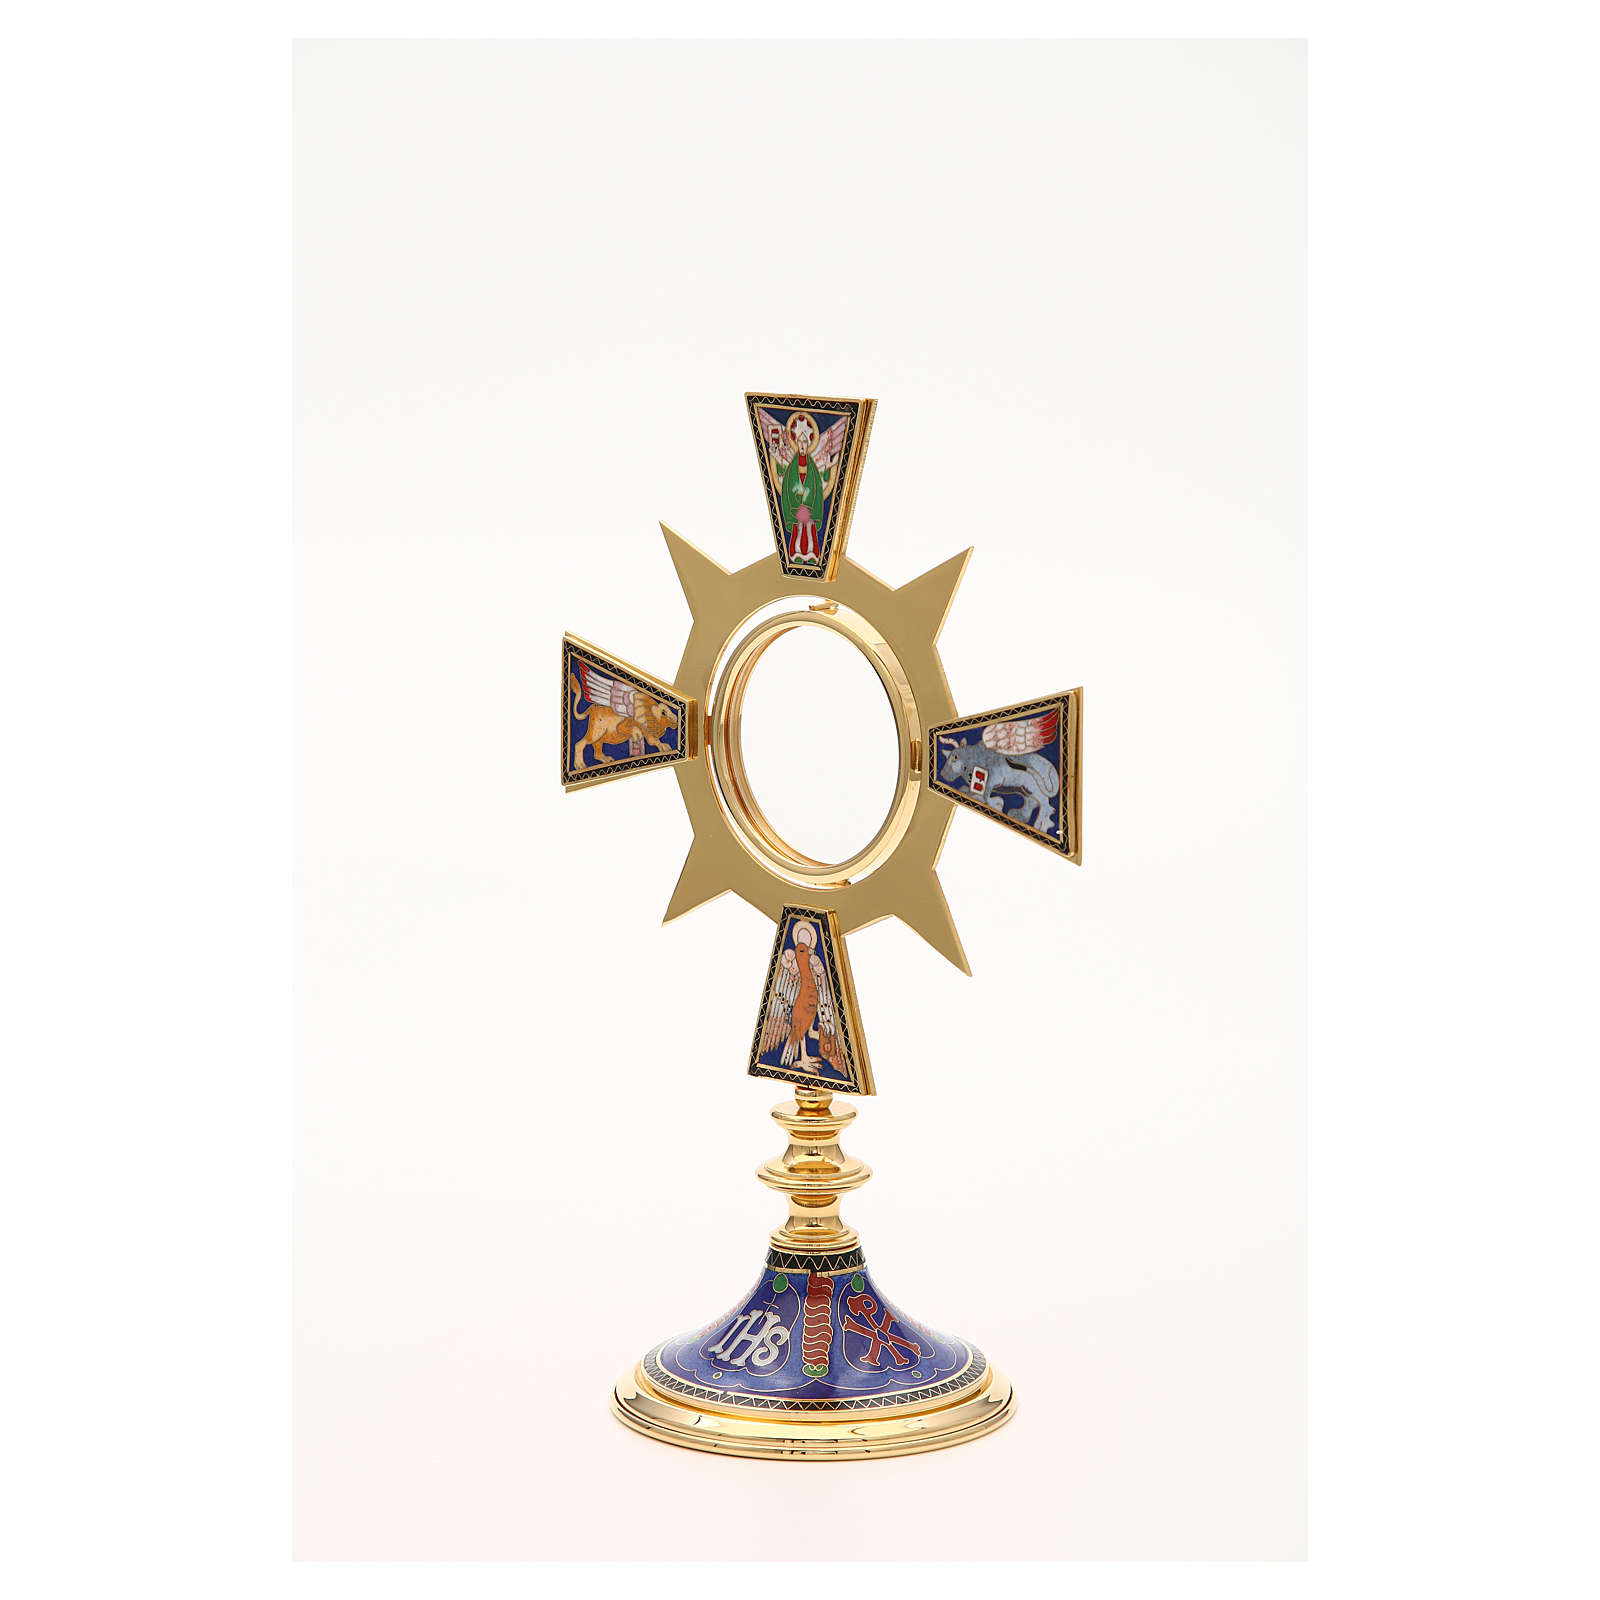 Monstrance in brass and enamel, Four Evangelists, IHS 4